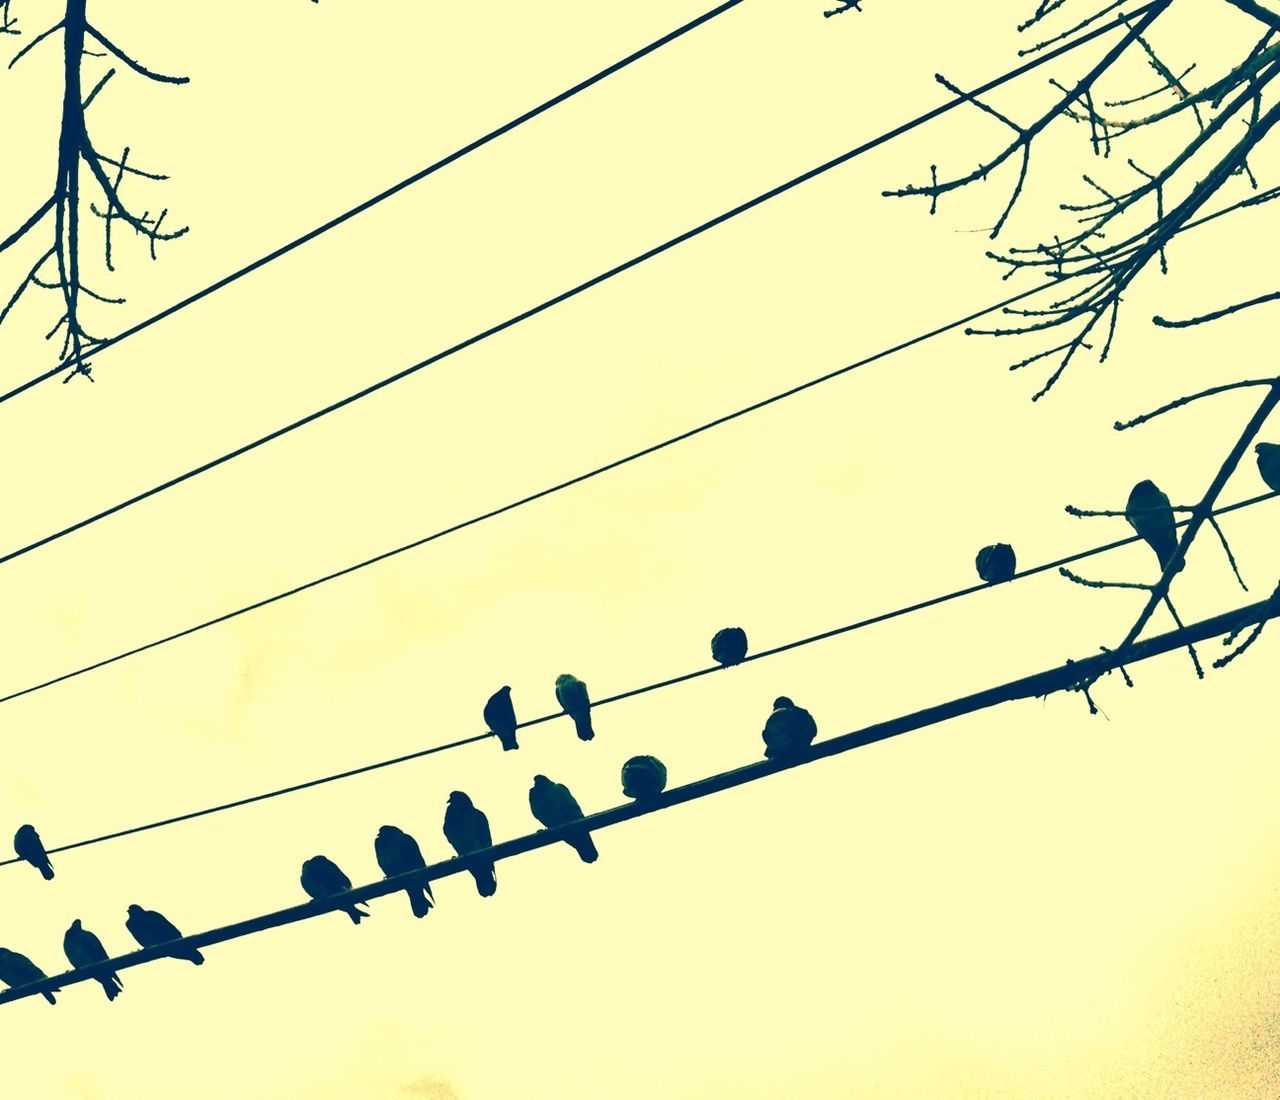 Low angle view of birds on cables against clear sky